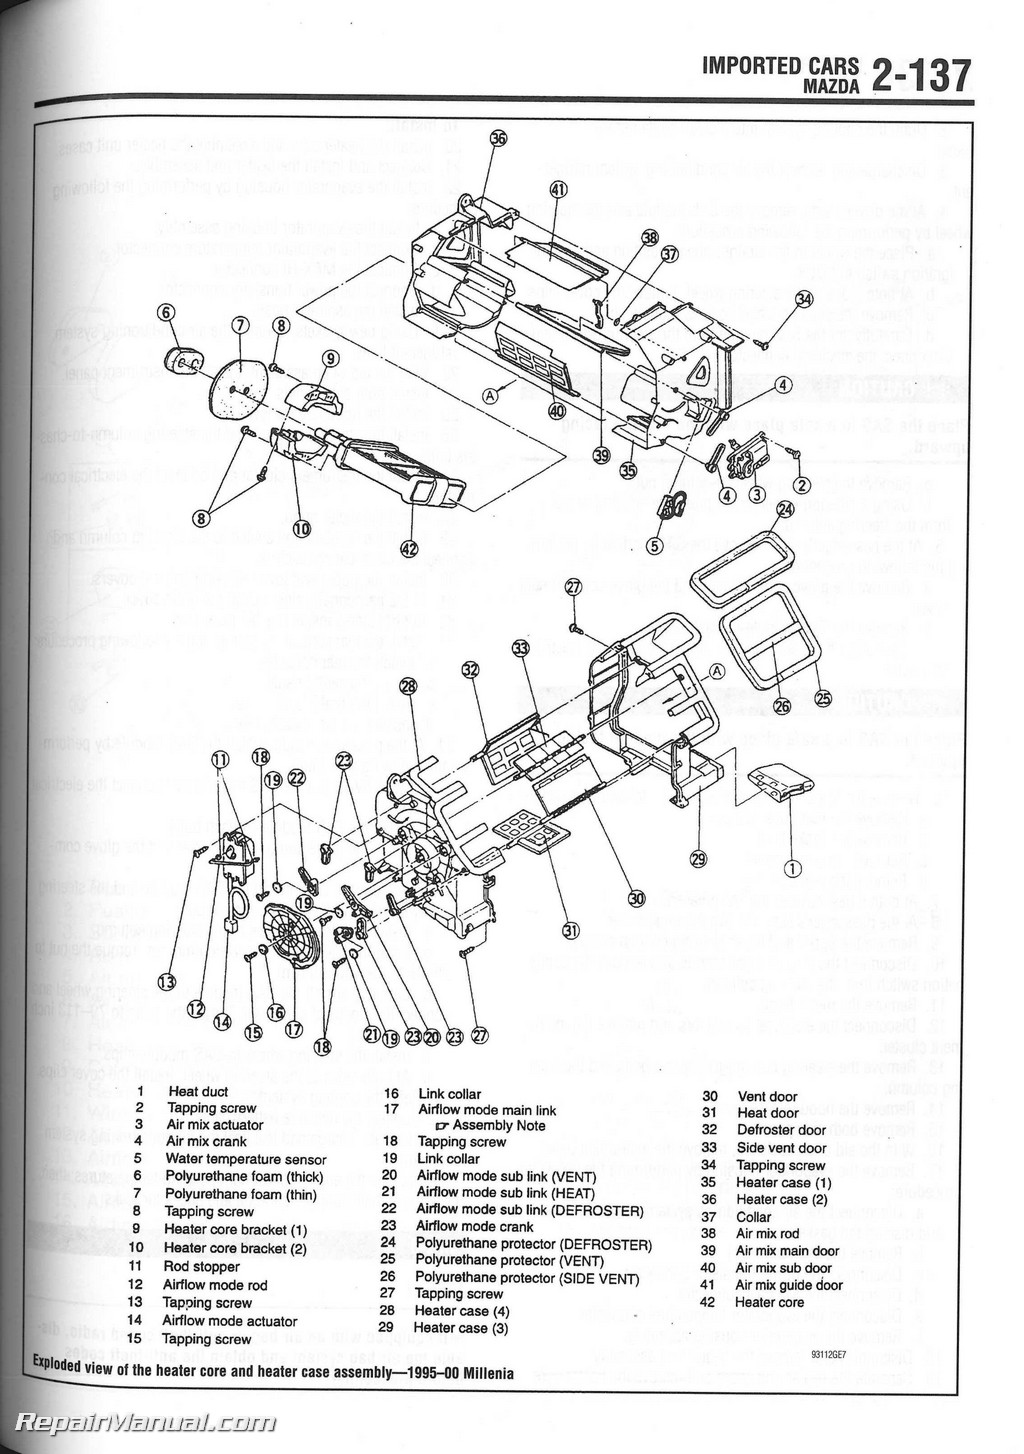 doc00782020150430084421_004-Copy Nissan Pickup Wiring Diagram on